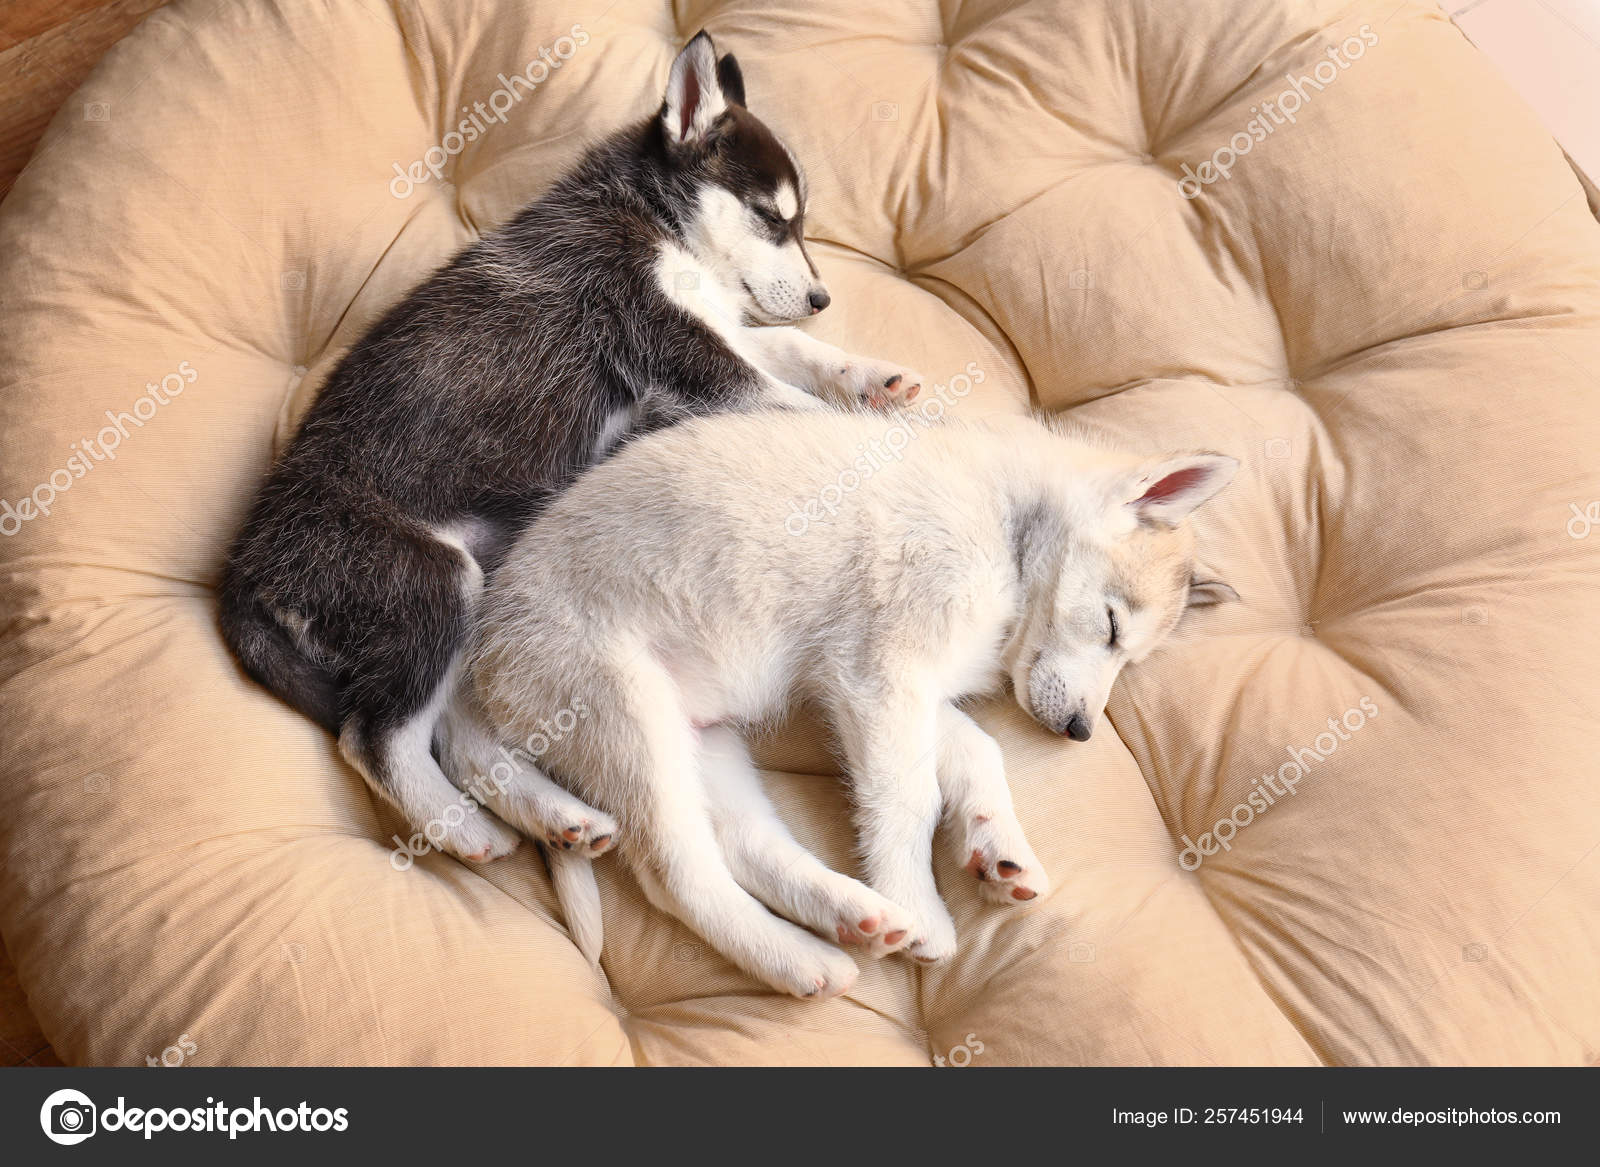 Cute Husky Puppies Sleeping At Home Stock Photo C Serezniy 257451944